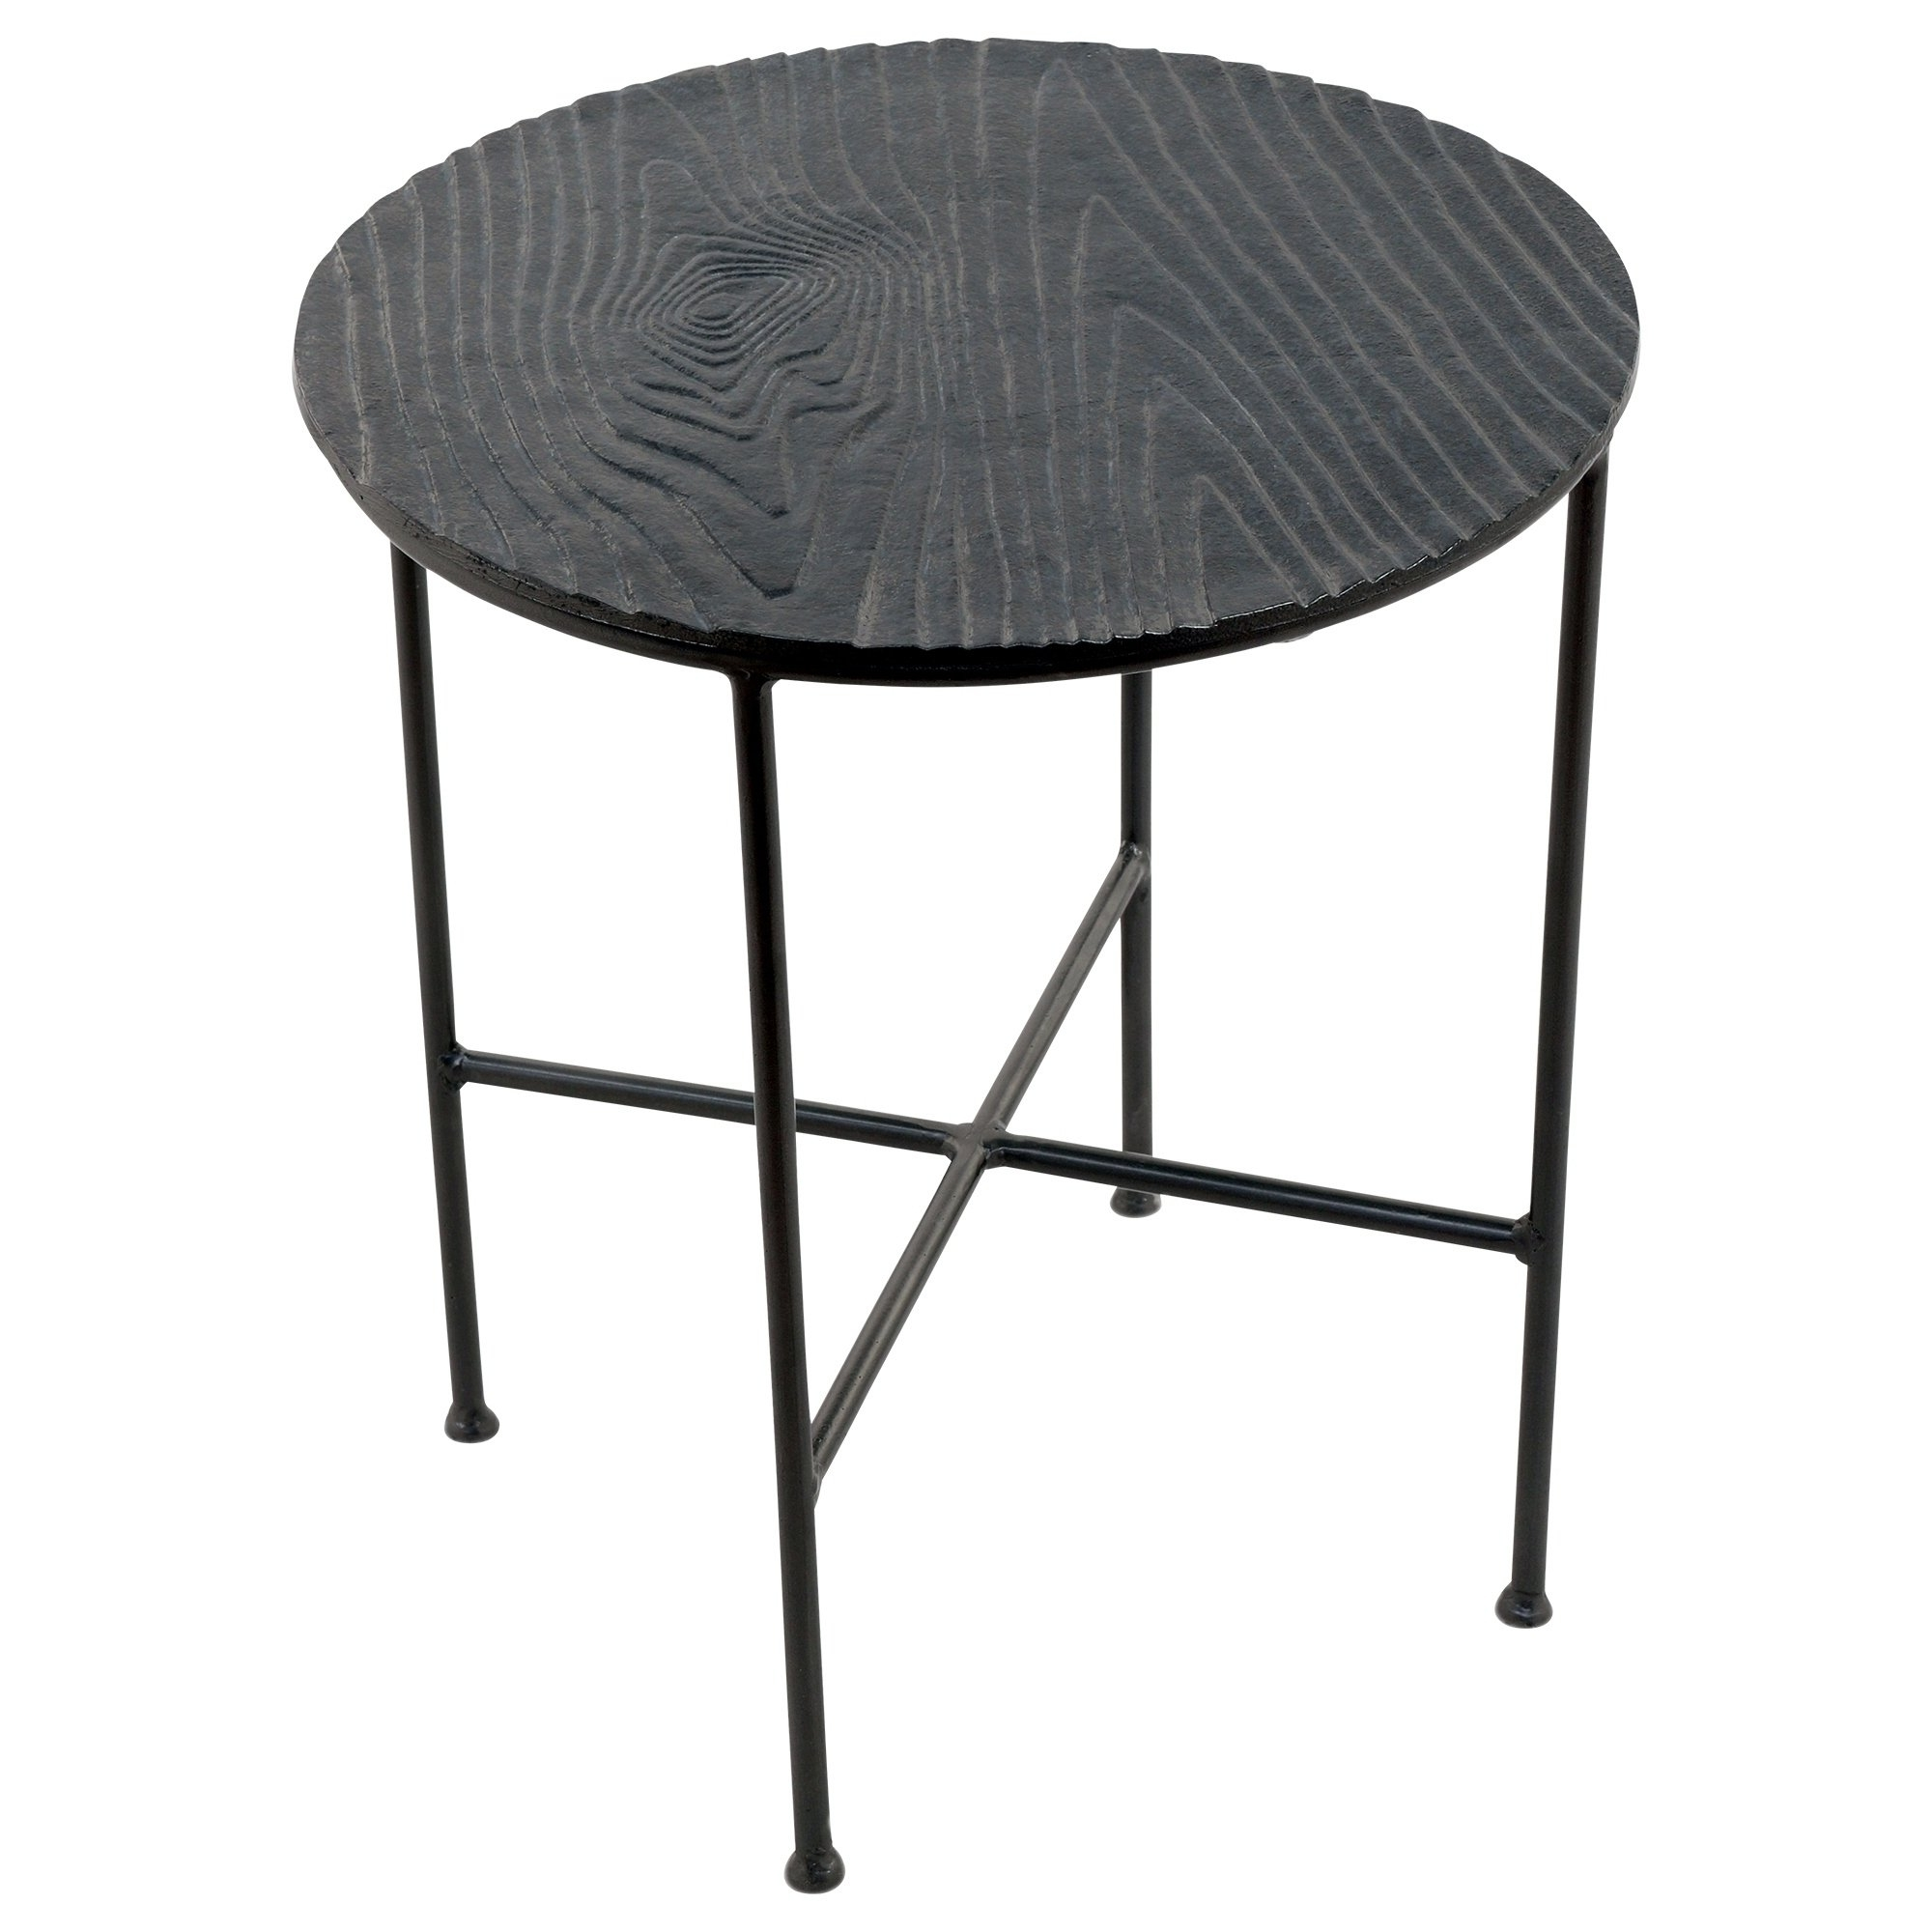 Preferred Bale Rustic Grey Round Cocktail Tables With Storage Throughout Shop Renwil Bale Grey Aluminum Round Accent Table – Free Shipping (View 9 of 20)